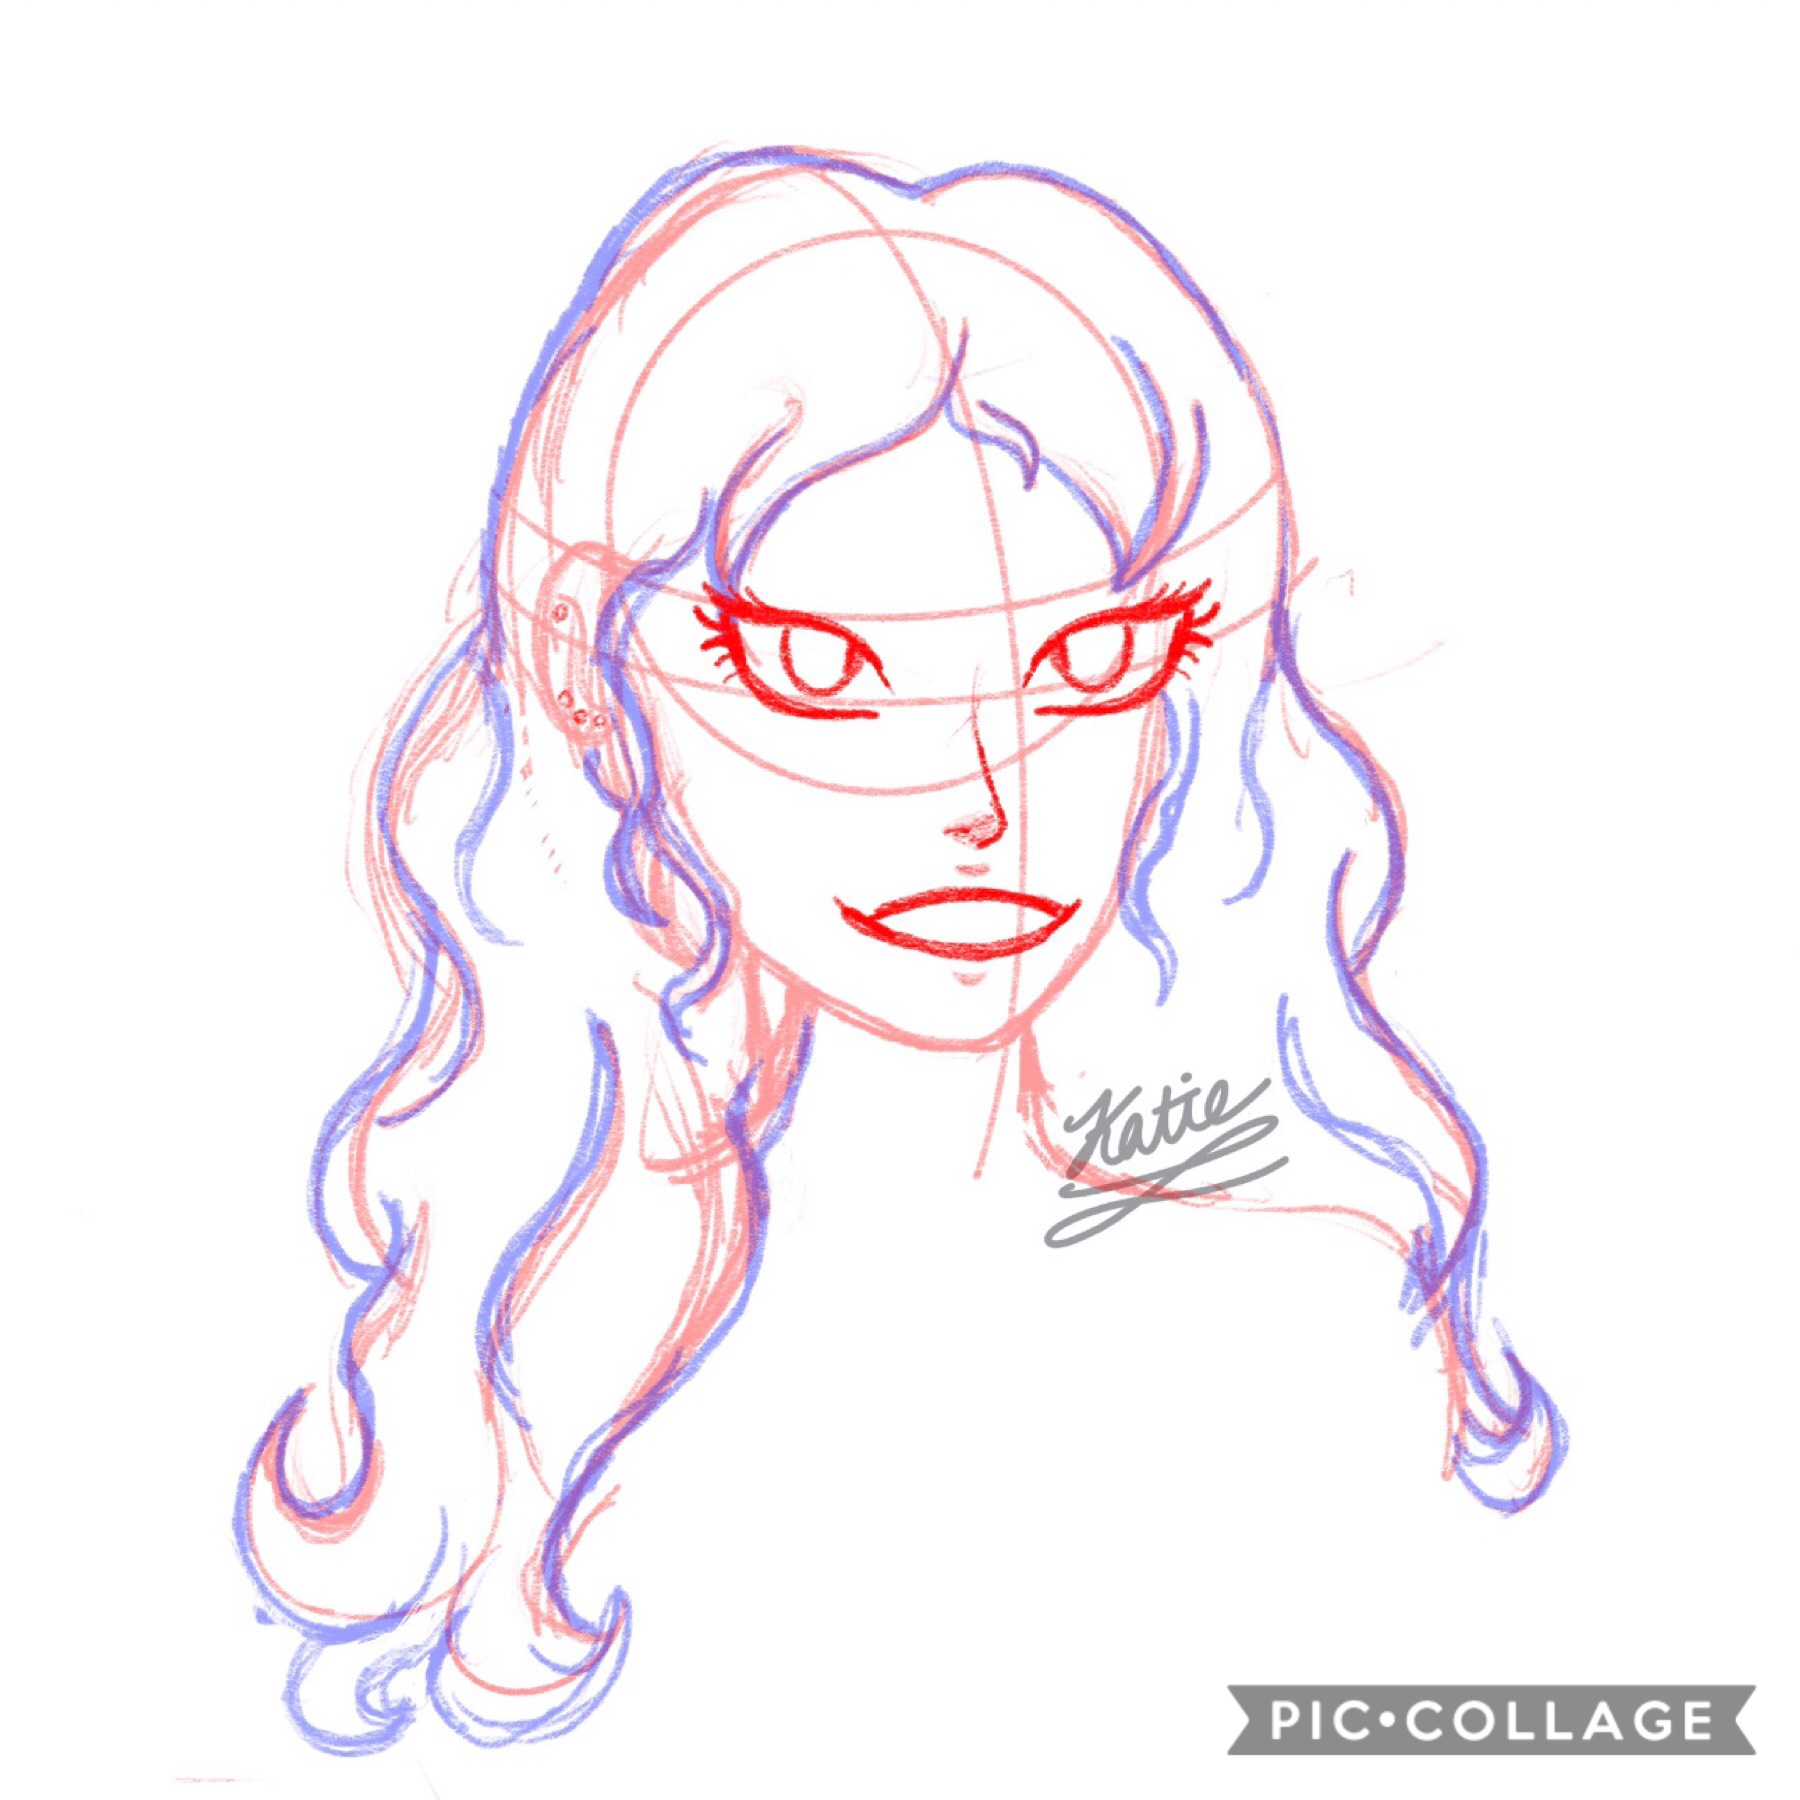 quick 5-10 minute sketch-  yay you actually tapped! here's a really quick sketch that's about to be ruined by lineart lol not my best, but I still like it? I think? ignore the bad proportion lines tho lol. prob going to take this down soon.